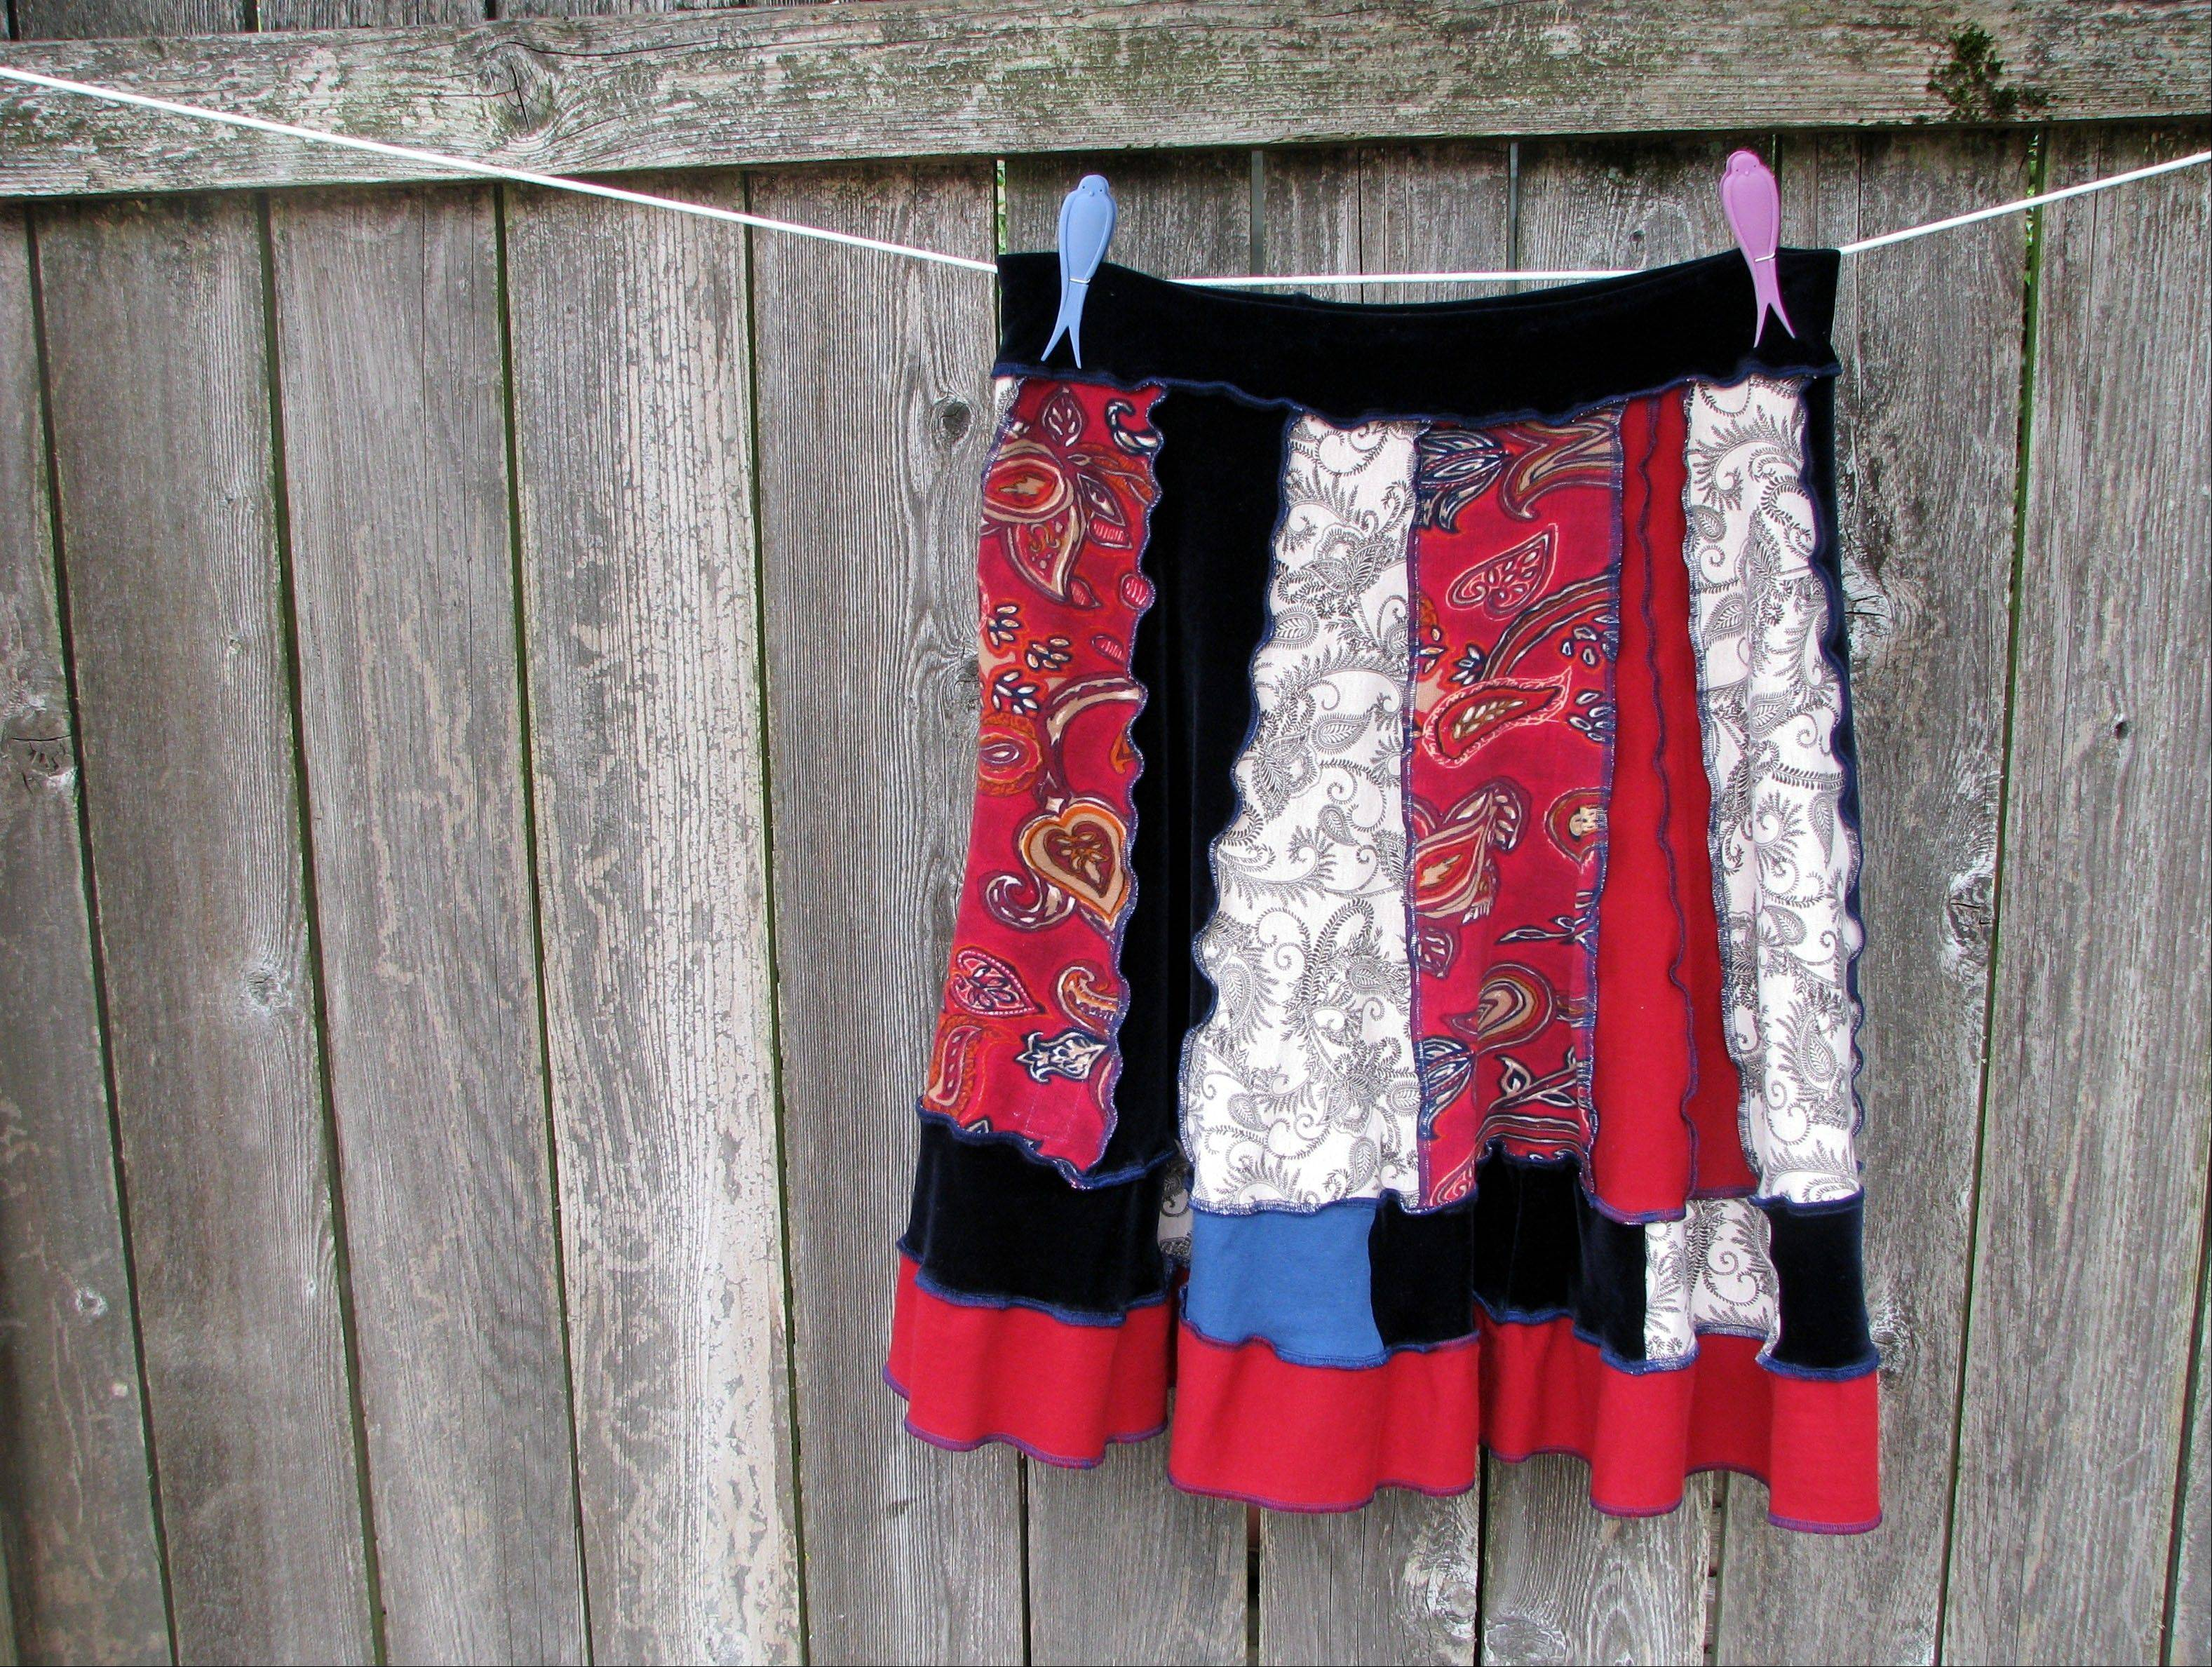 A skirt sewed together with panels of T-shirt and other fabrics in Salem, Ore.